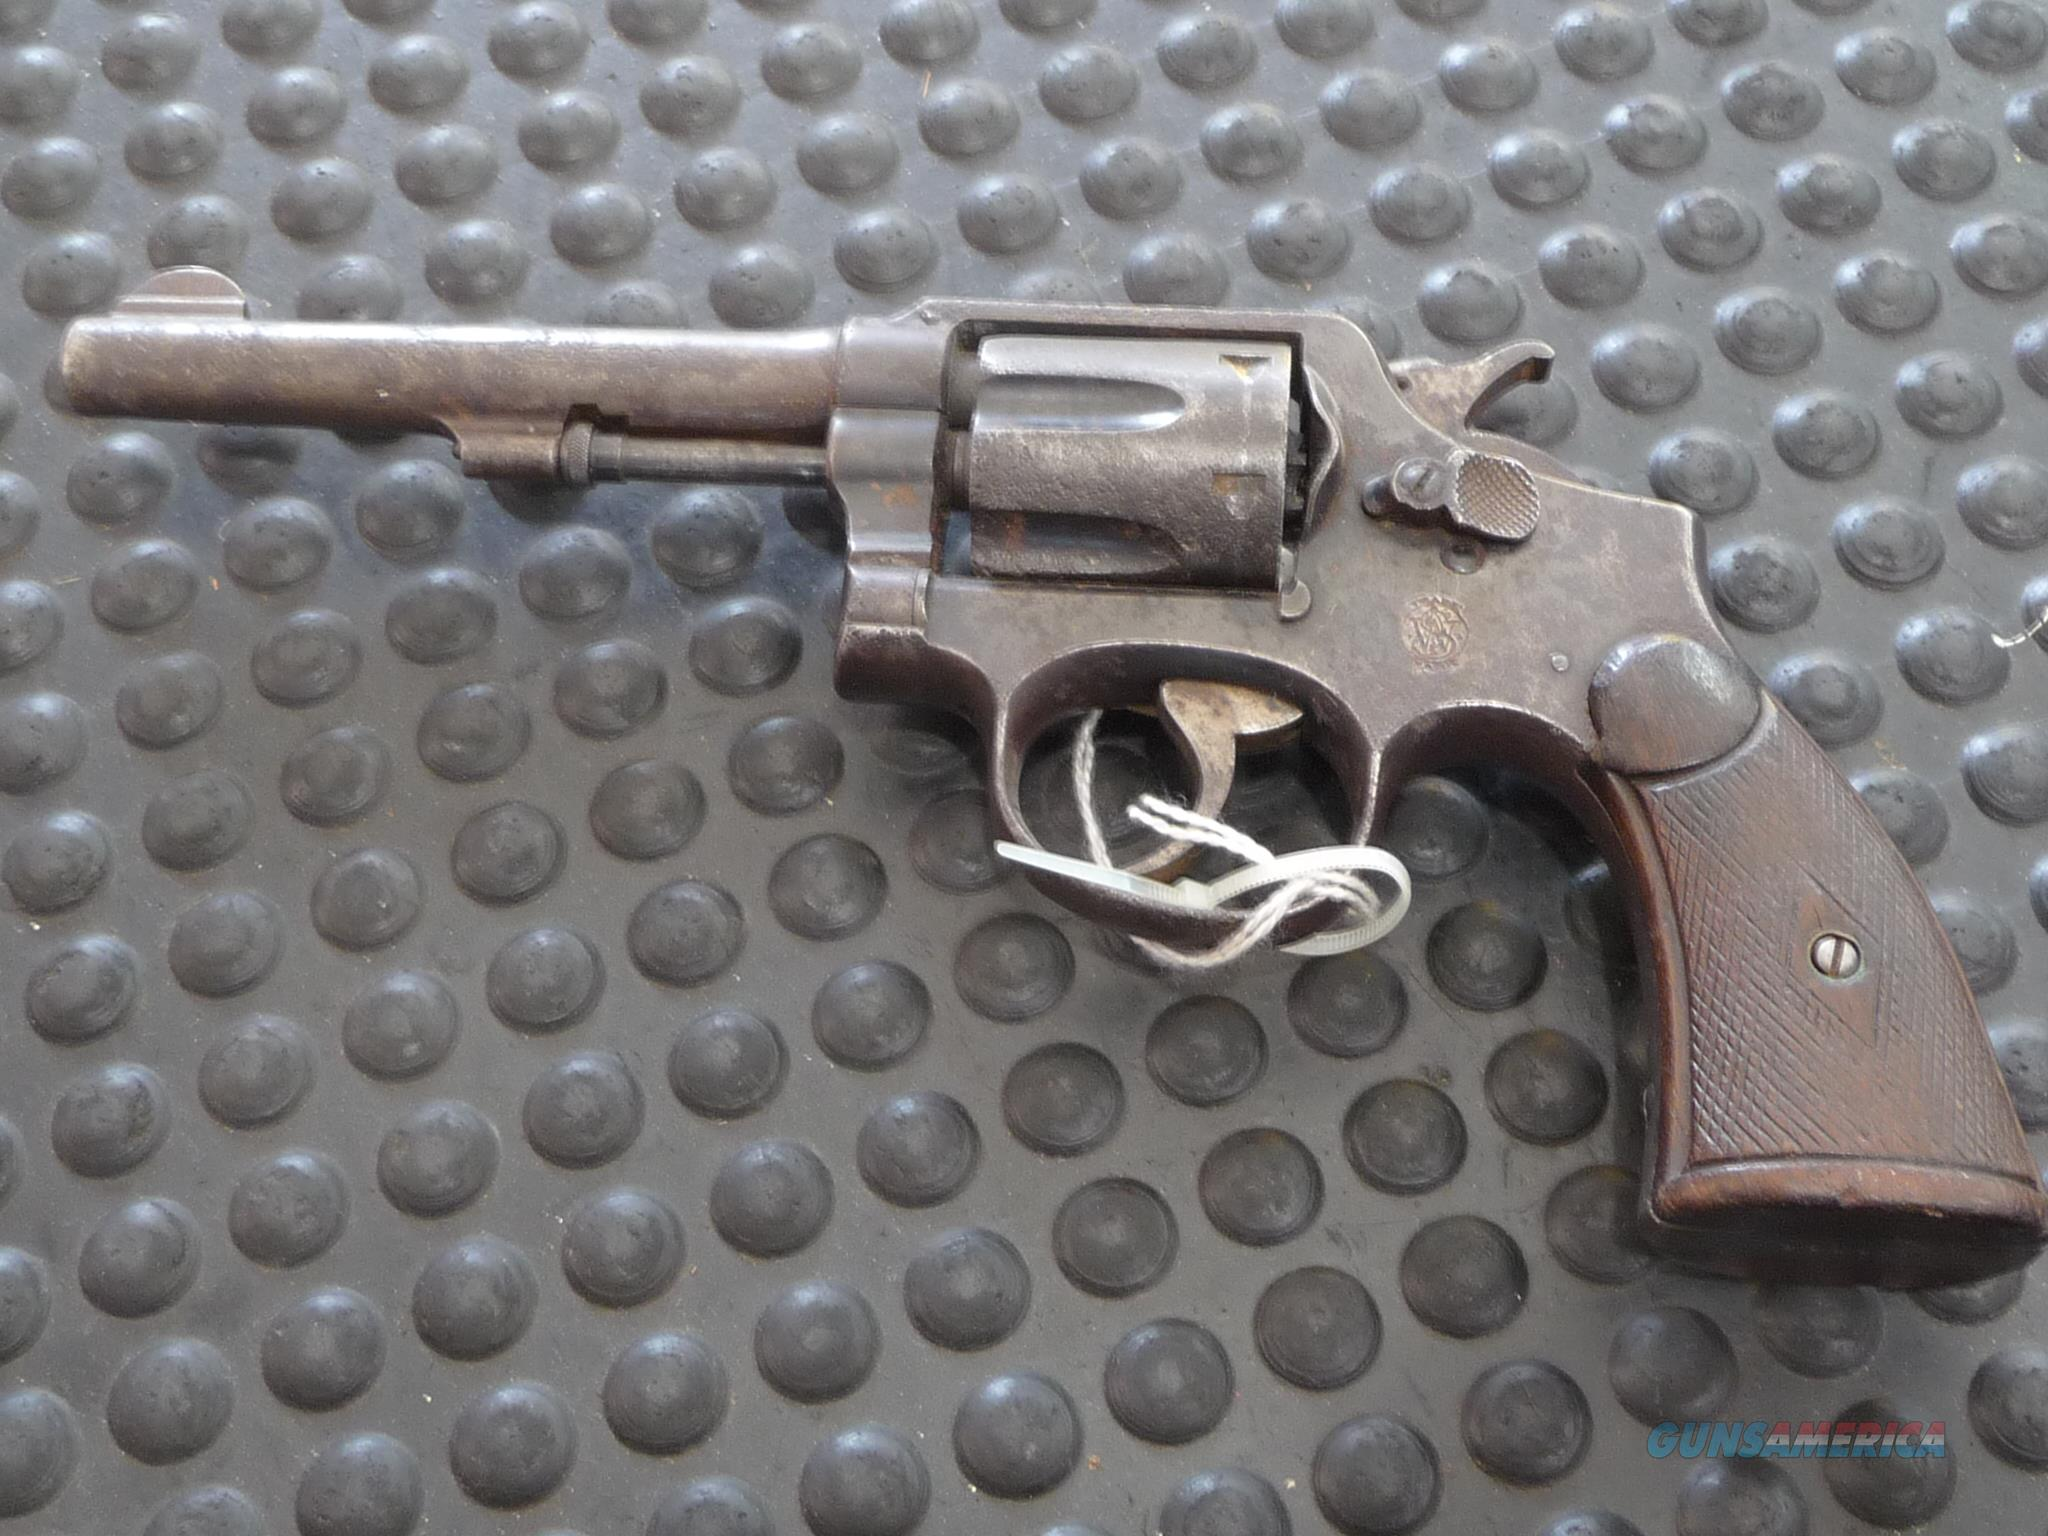 Smith & Wesson .38 Special Vintage Revolver  Guns > Pistols > Smith & Wesson Revolvers > Pre-1945